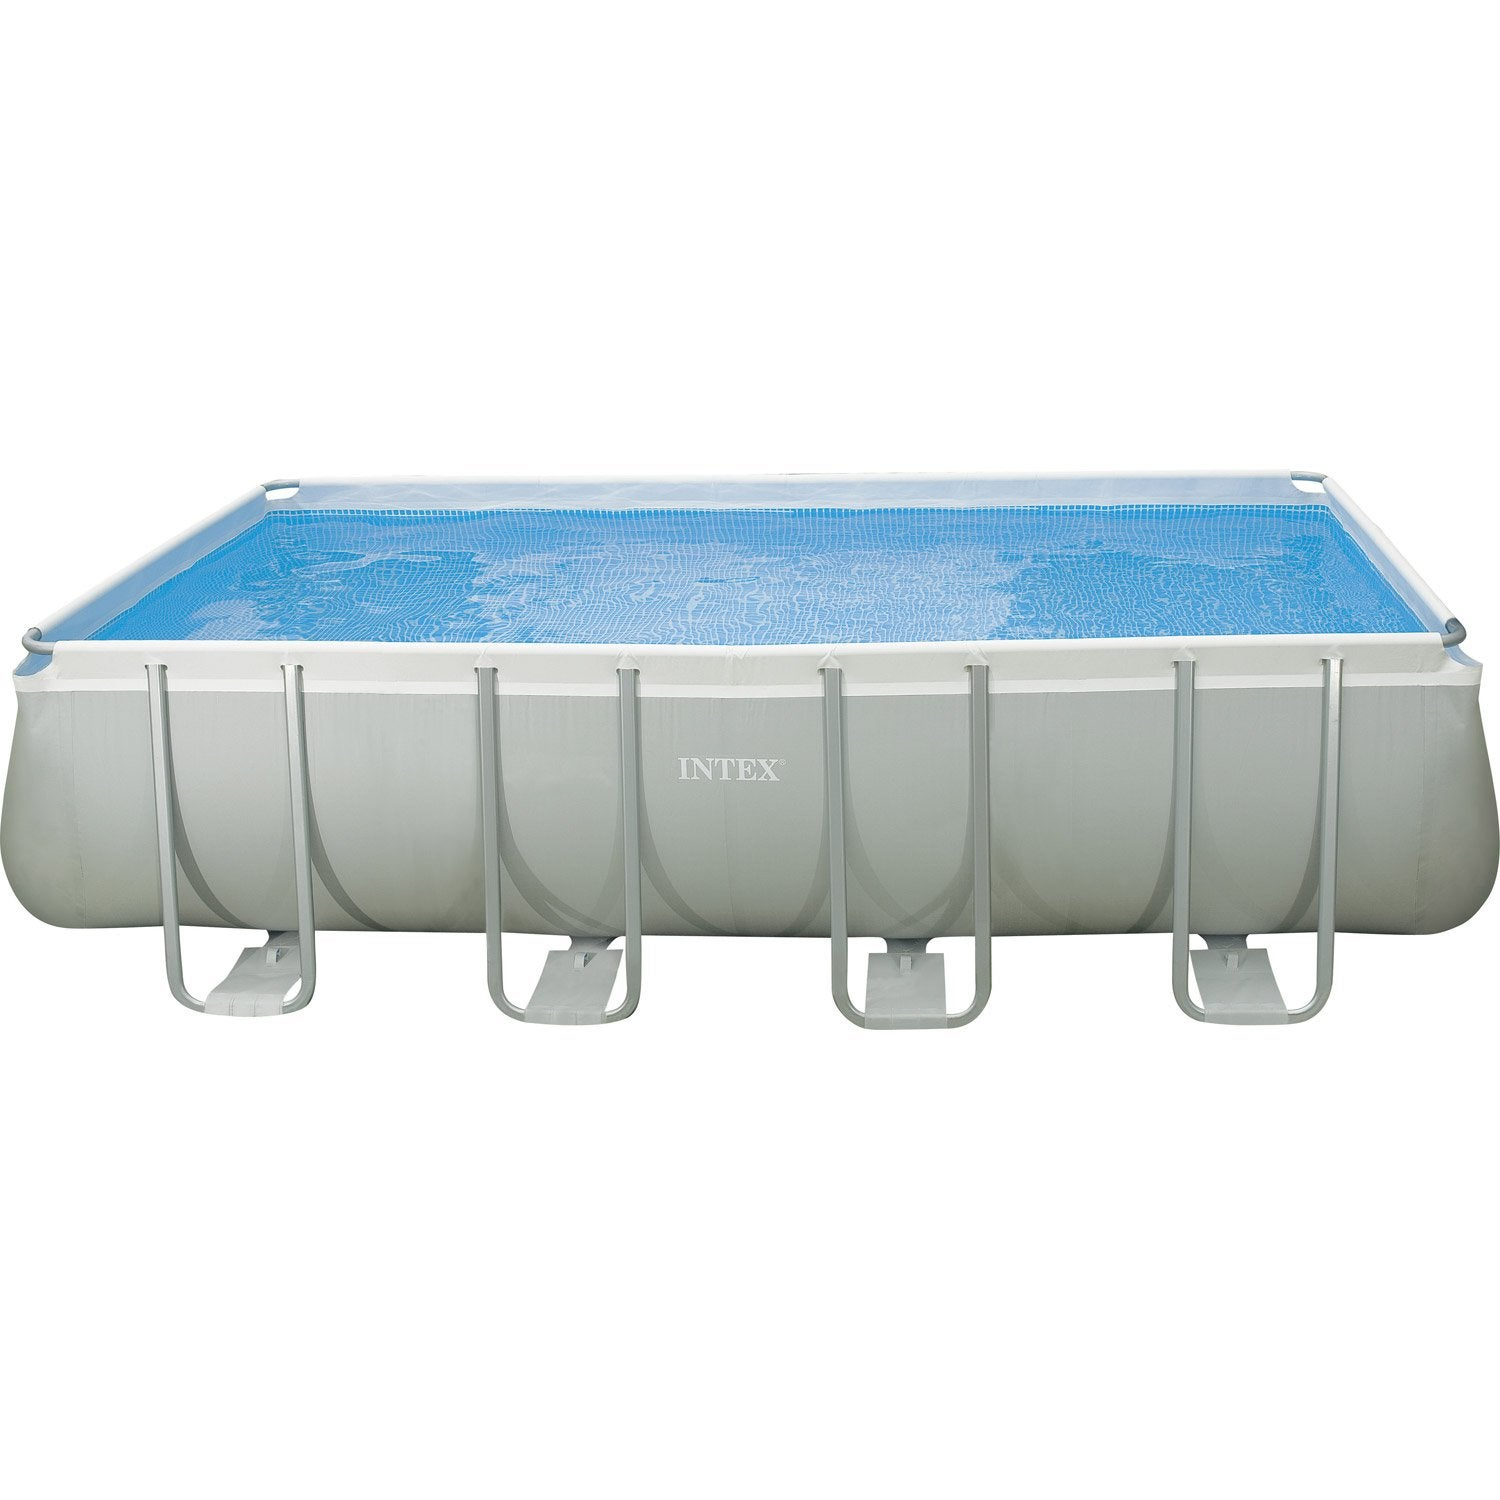 Piscine hors sol tubulaire ultra silver intex - Piscine rectangulaire hors sol intex ...